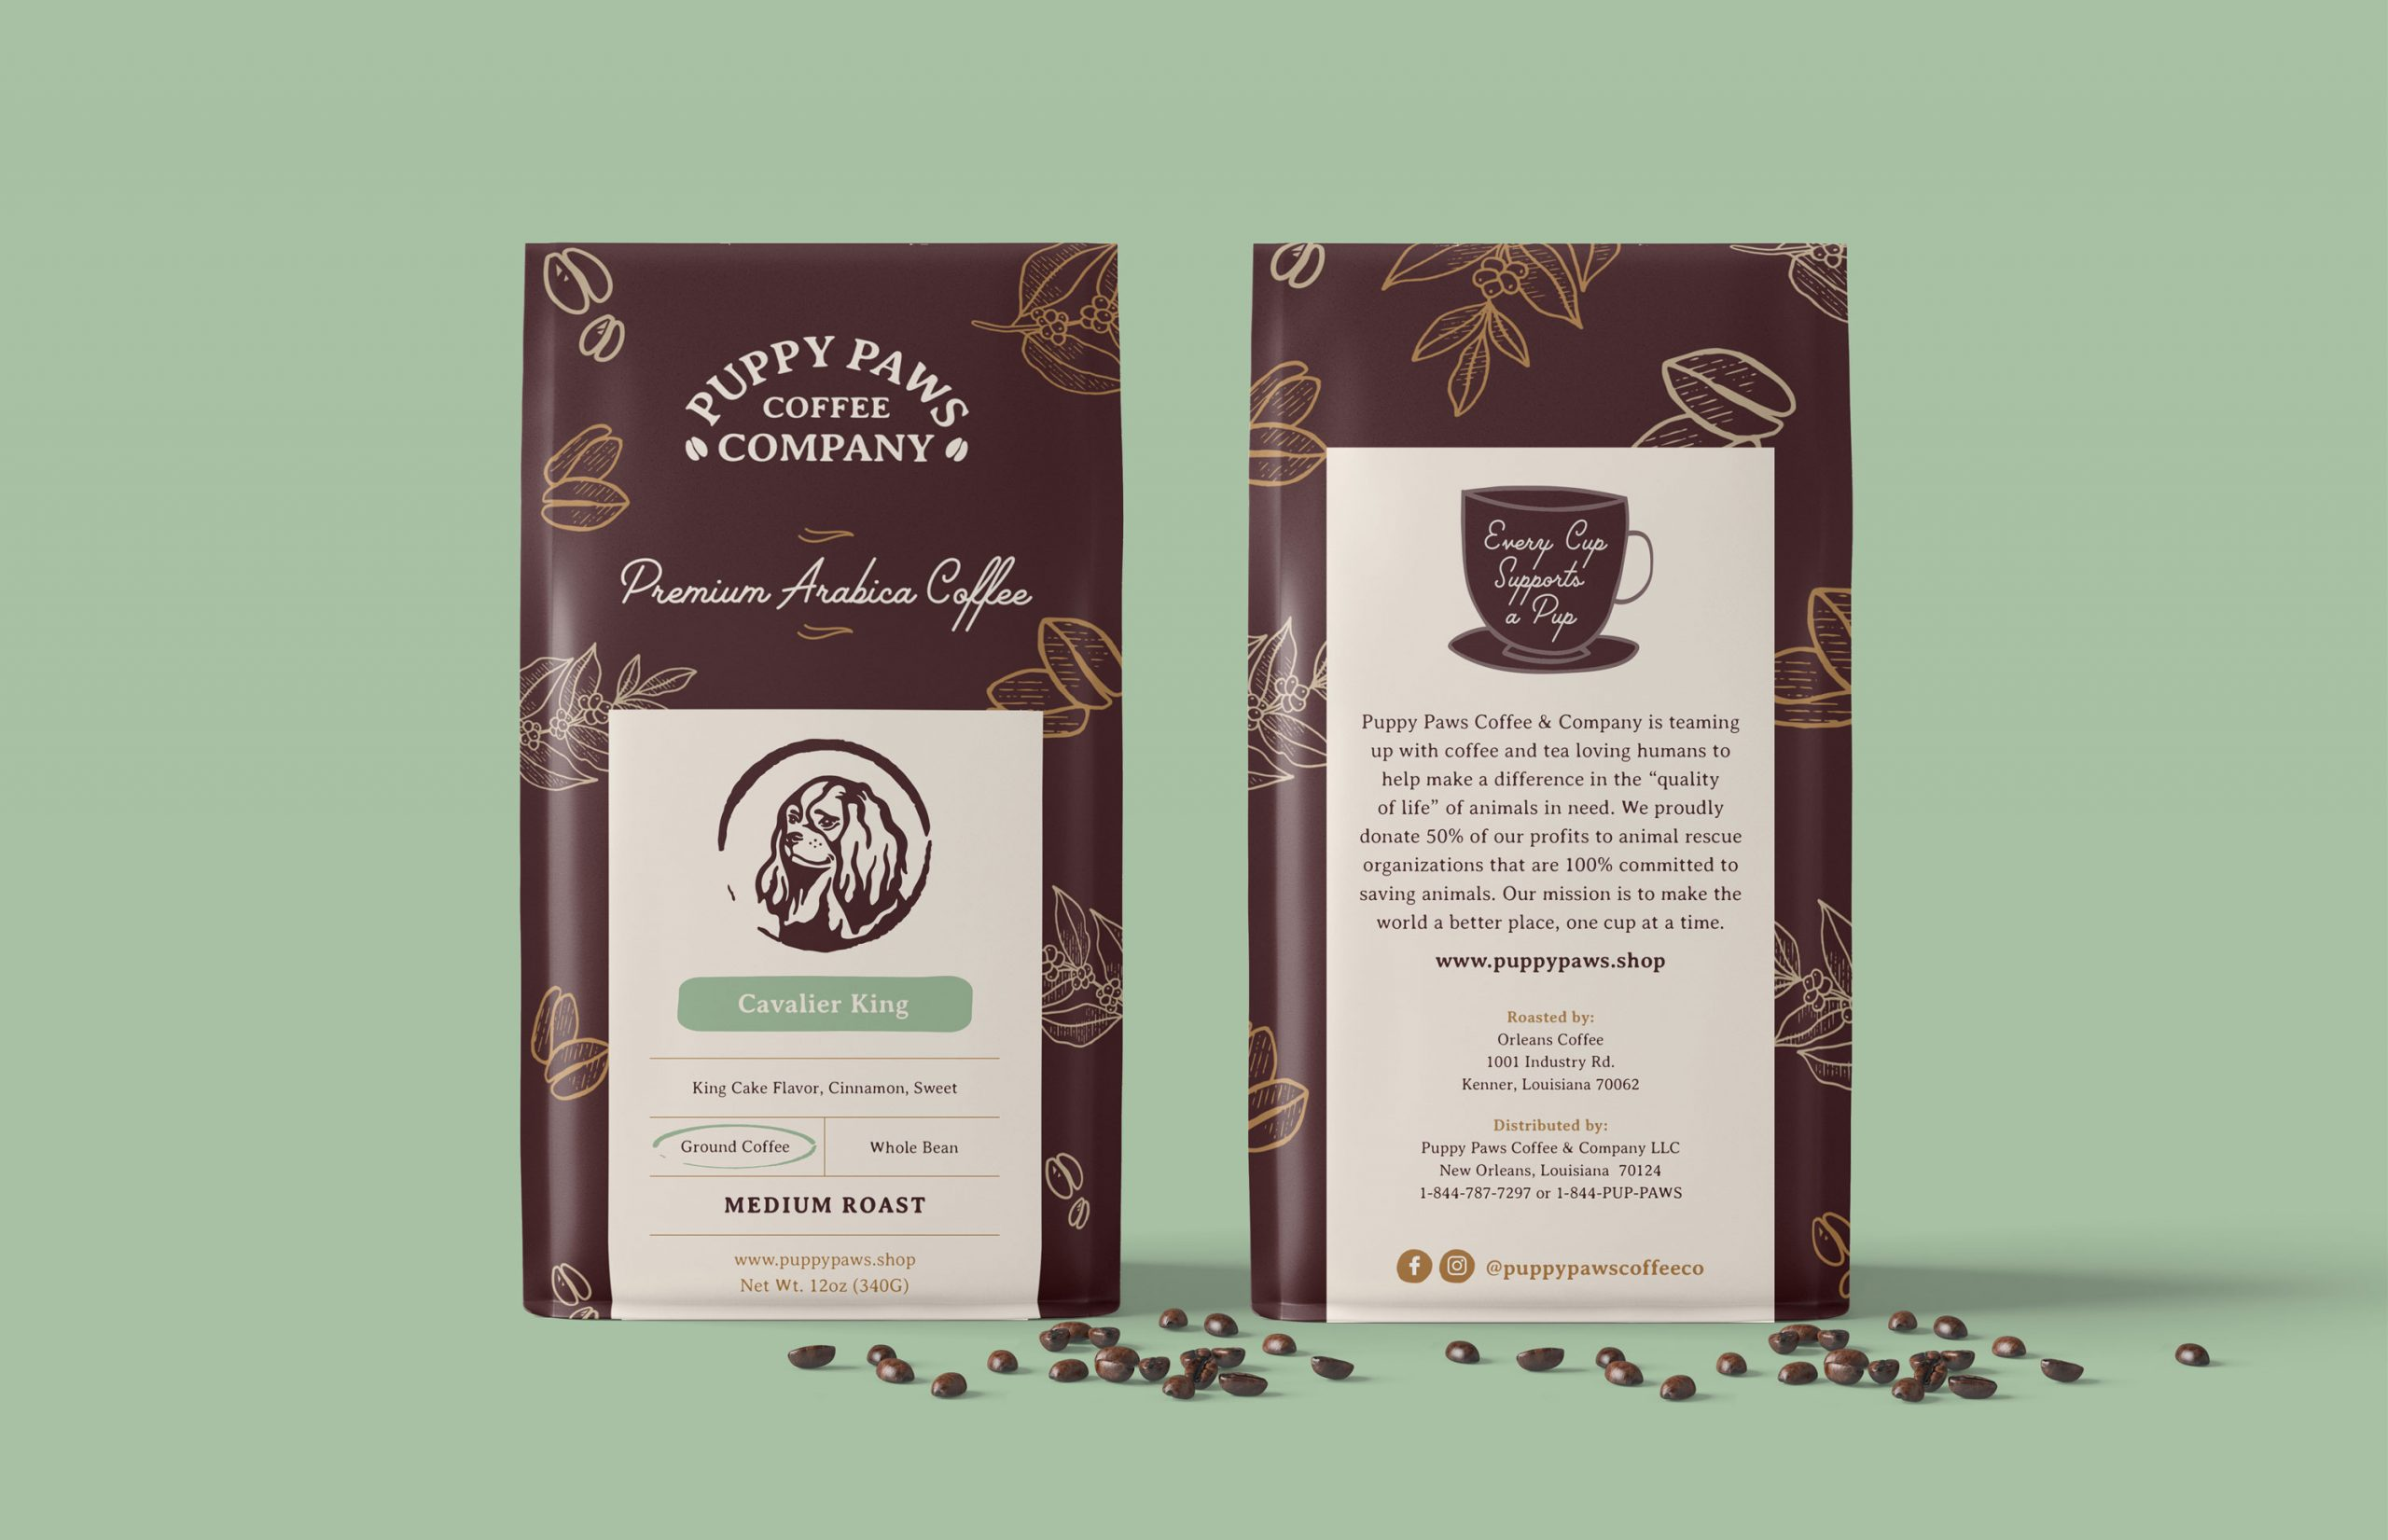 Puppy Paws Coffee Company brown coffee bags with labels